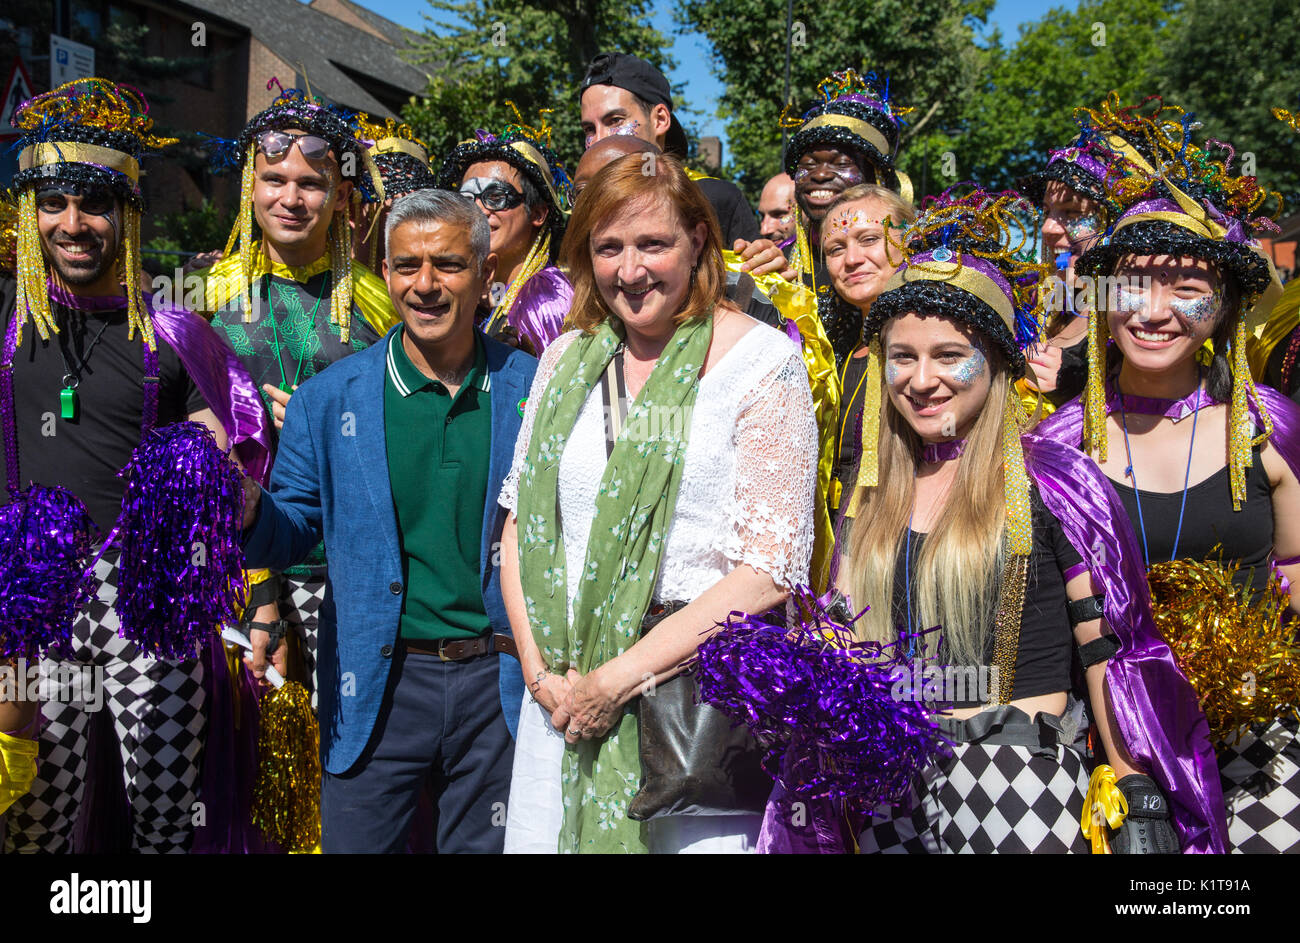 Mayor of London, Sadiq Khan with MP for Kensington, Emma Dent Coad at the Notting Hill carnival 2017.They both spoke about the Grenfell Tower tragedy - Stock Image